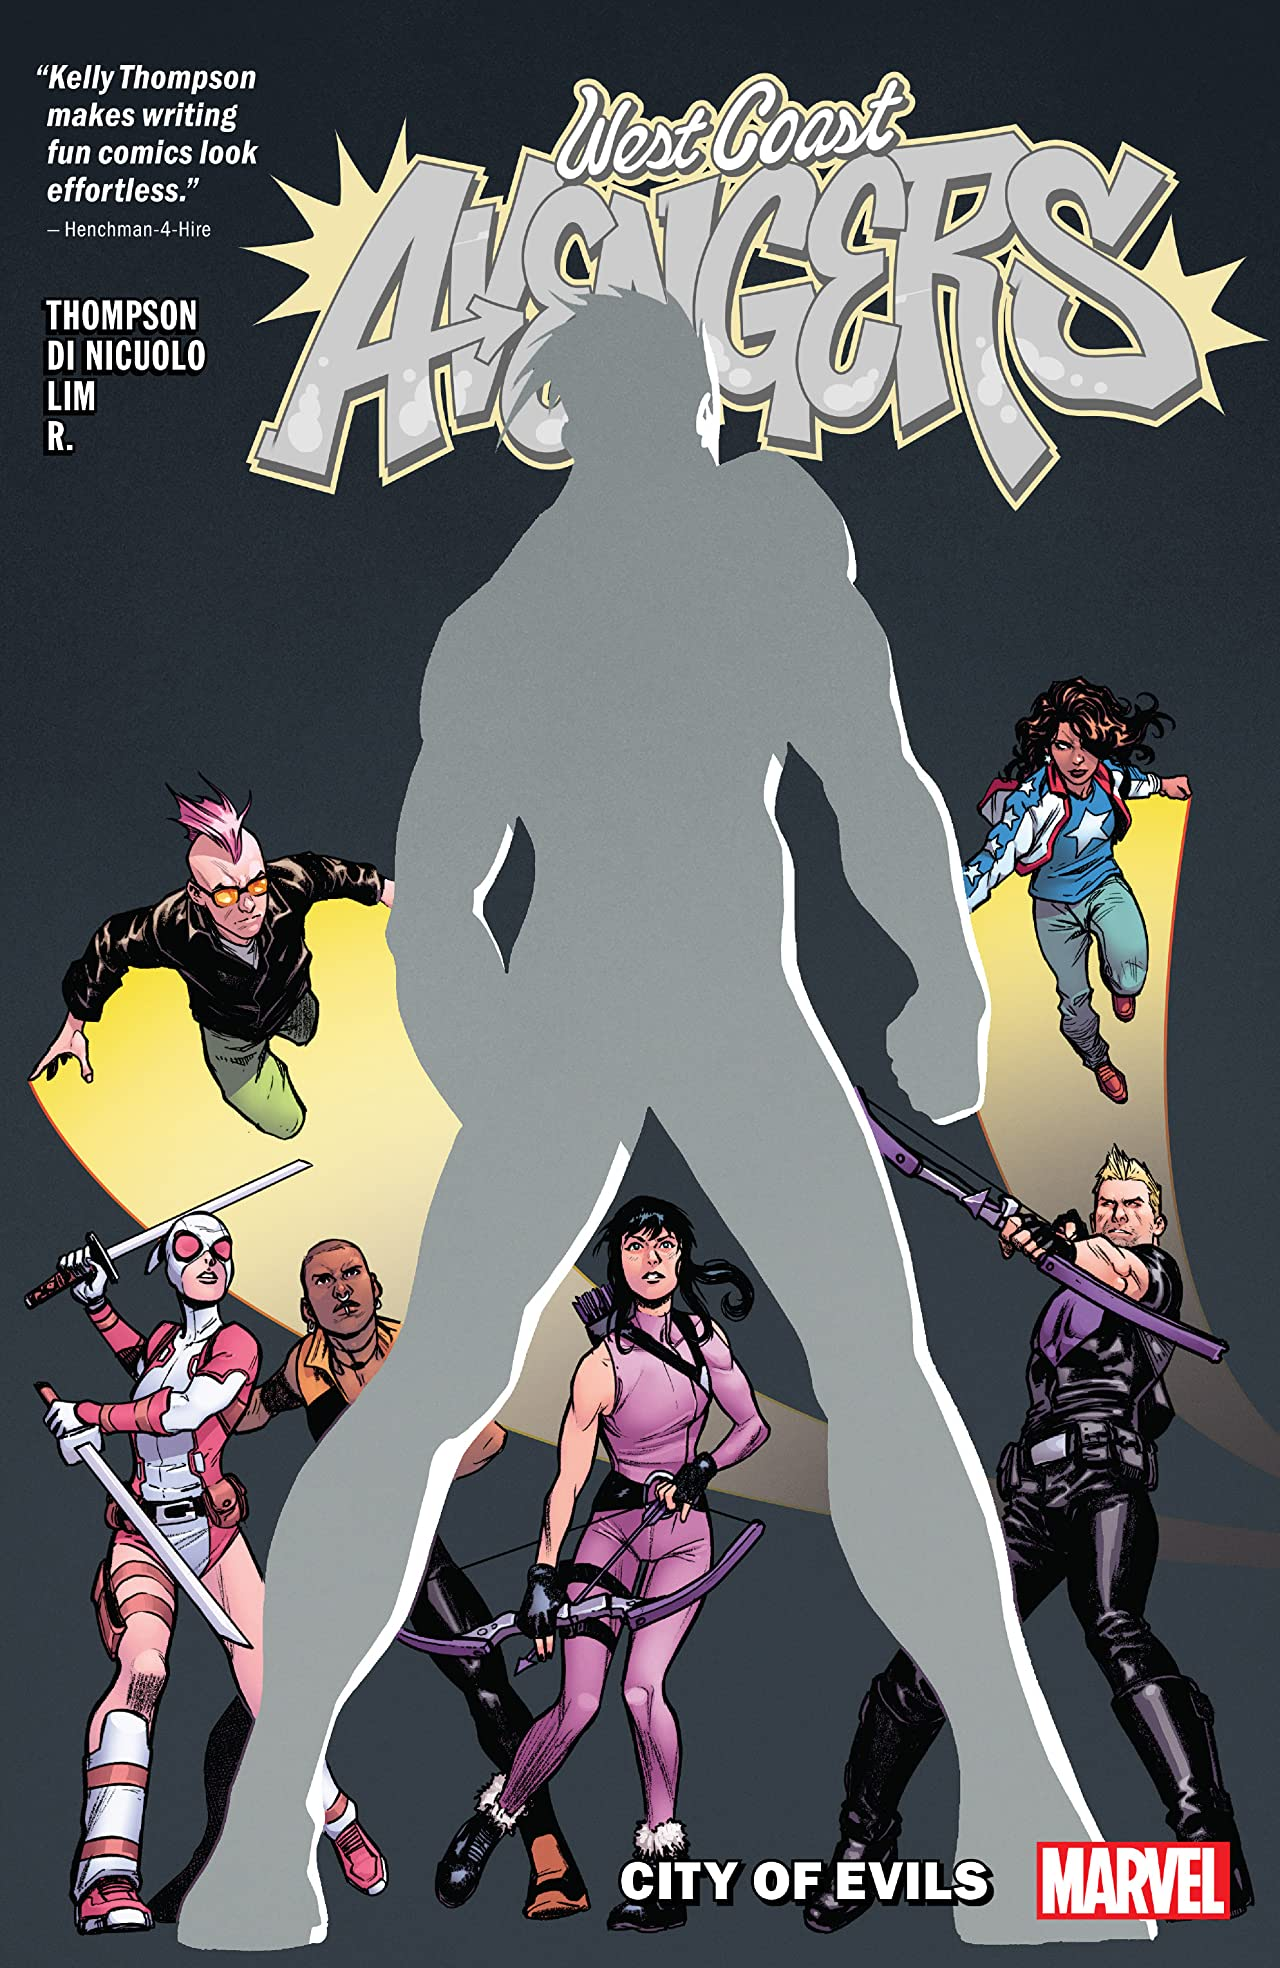 West Coast Avengers Vol. 2: City Of Evils